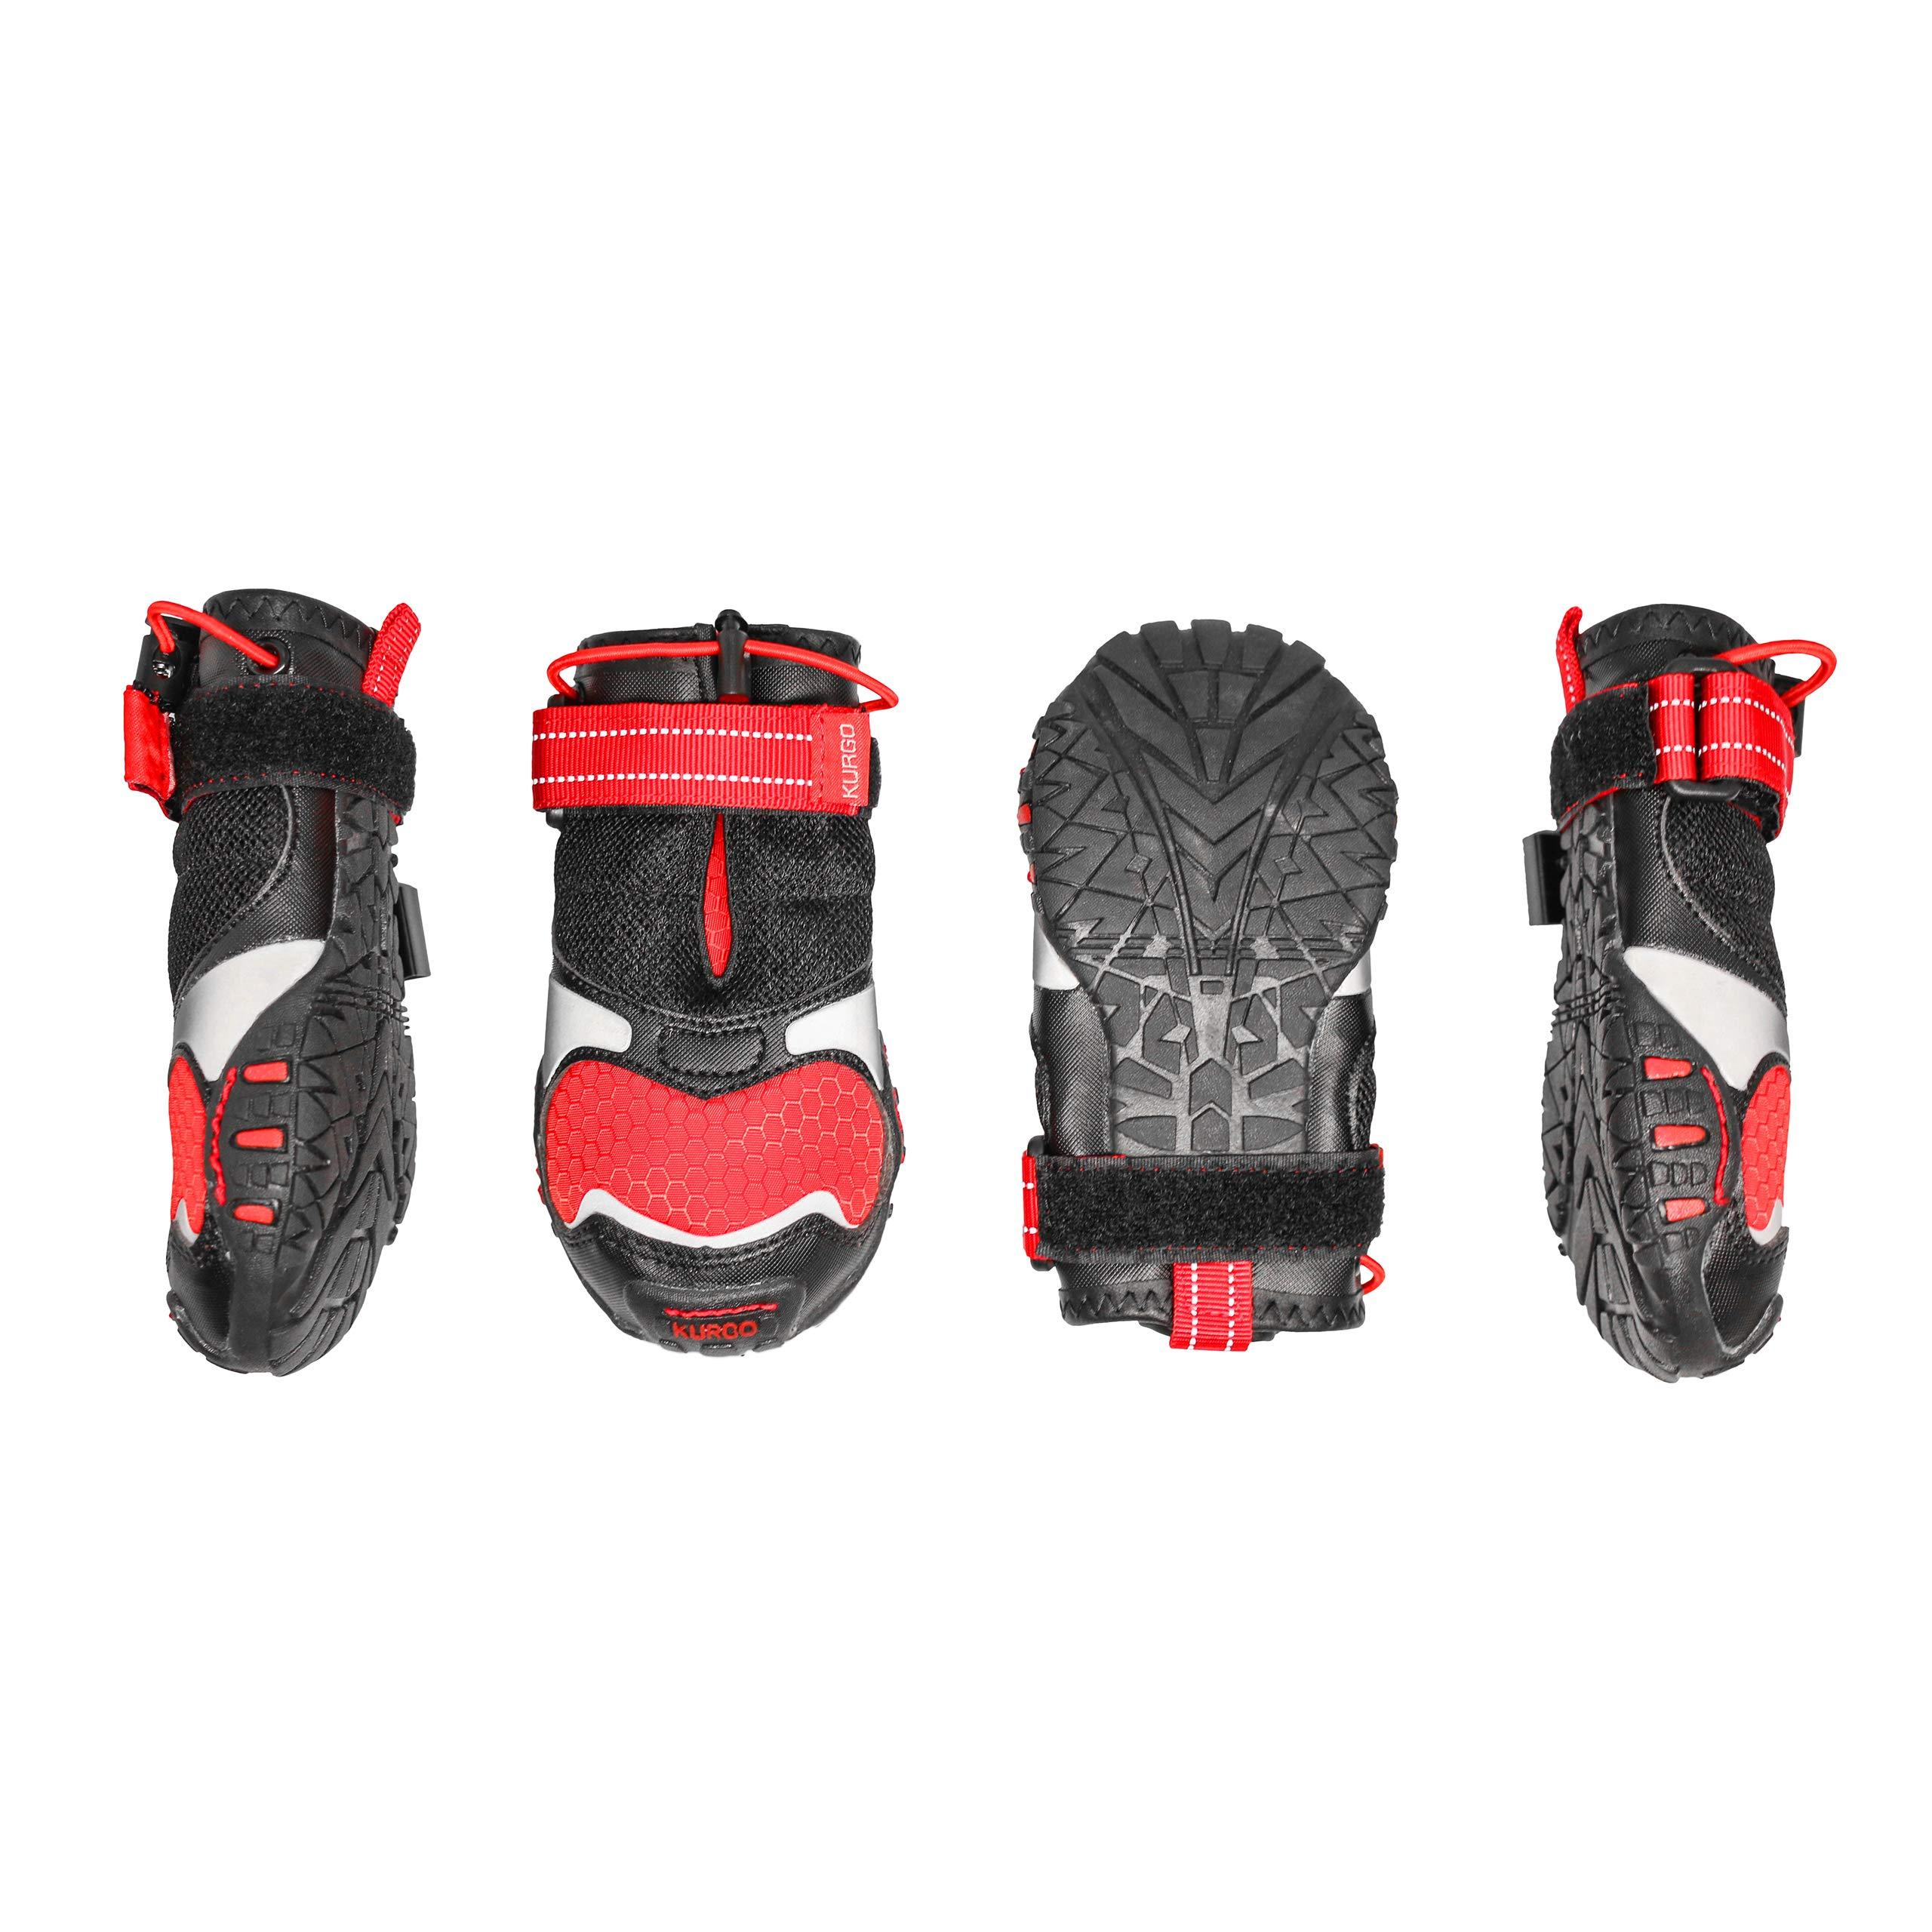 Kurgo Blaze Cross Dog Shoes | Winter Boots for Dogs | All Season Paw Protectors | Dog Shoes for Hot Pavement | Dog Snow Boots | Water Resistant | Reflective | No Slip | Chili Red/Black (X-Small) by Kurgo